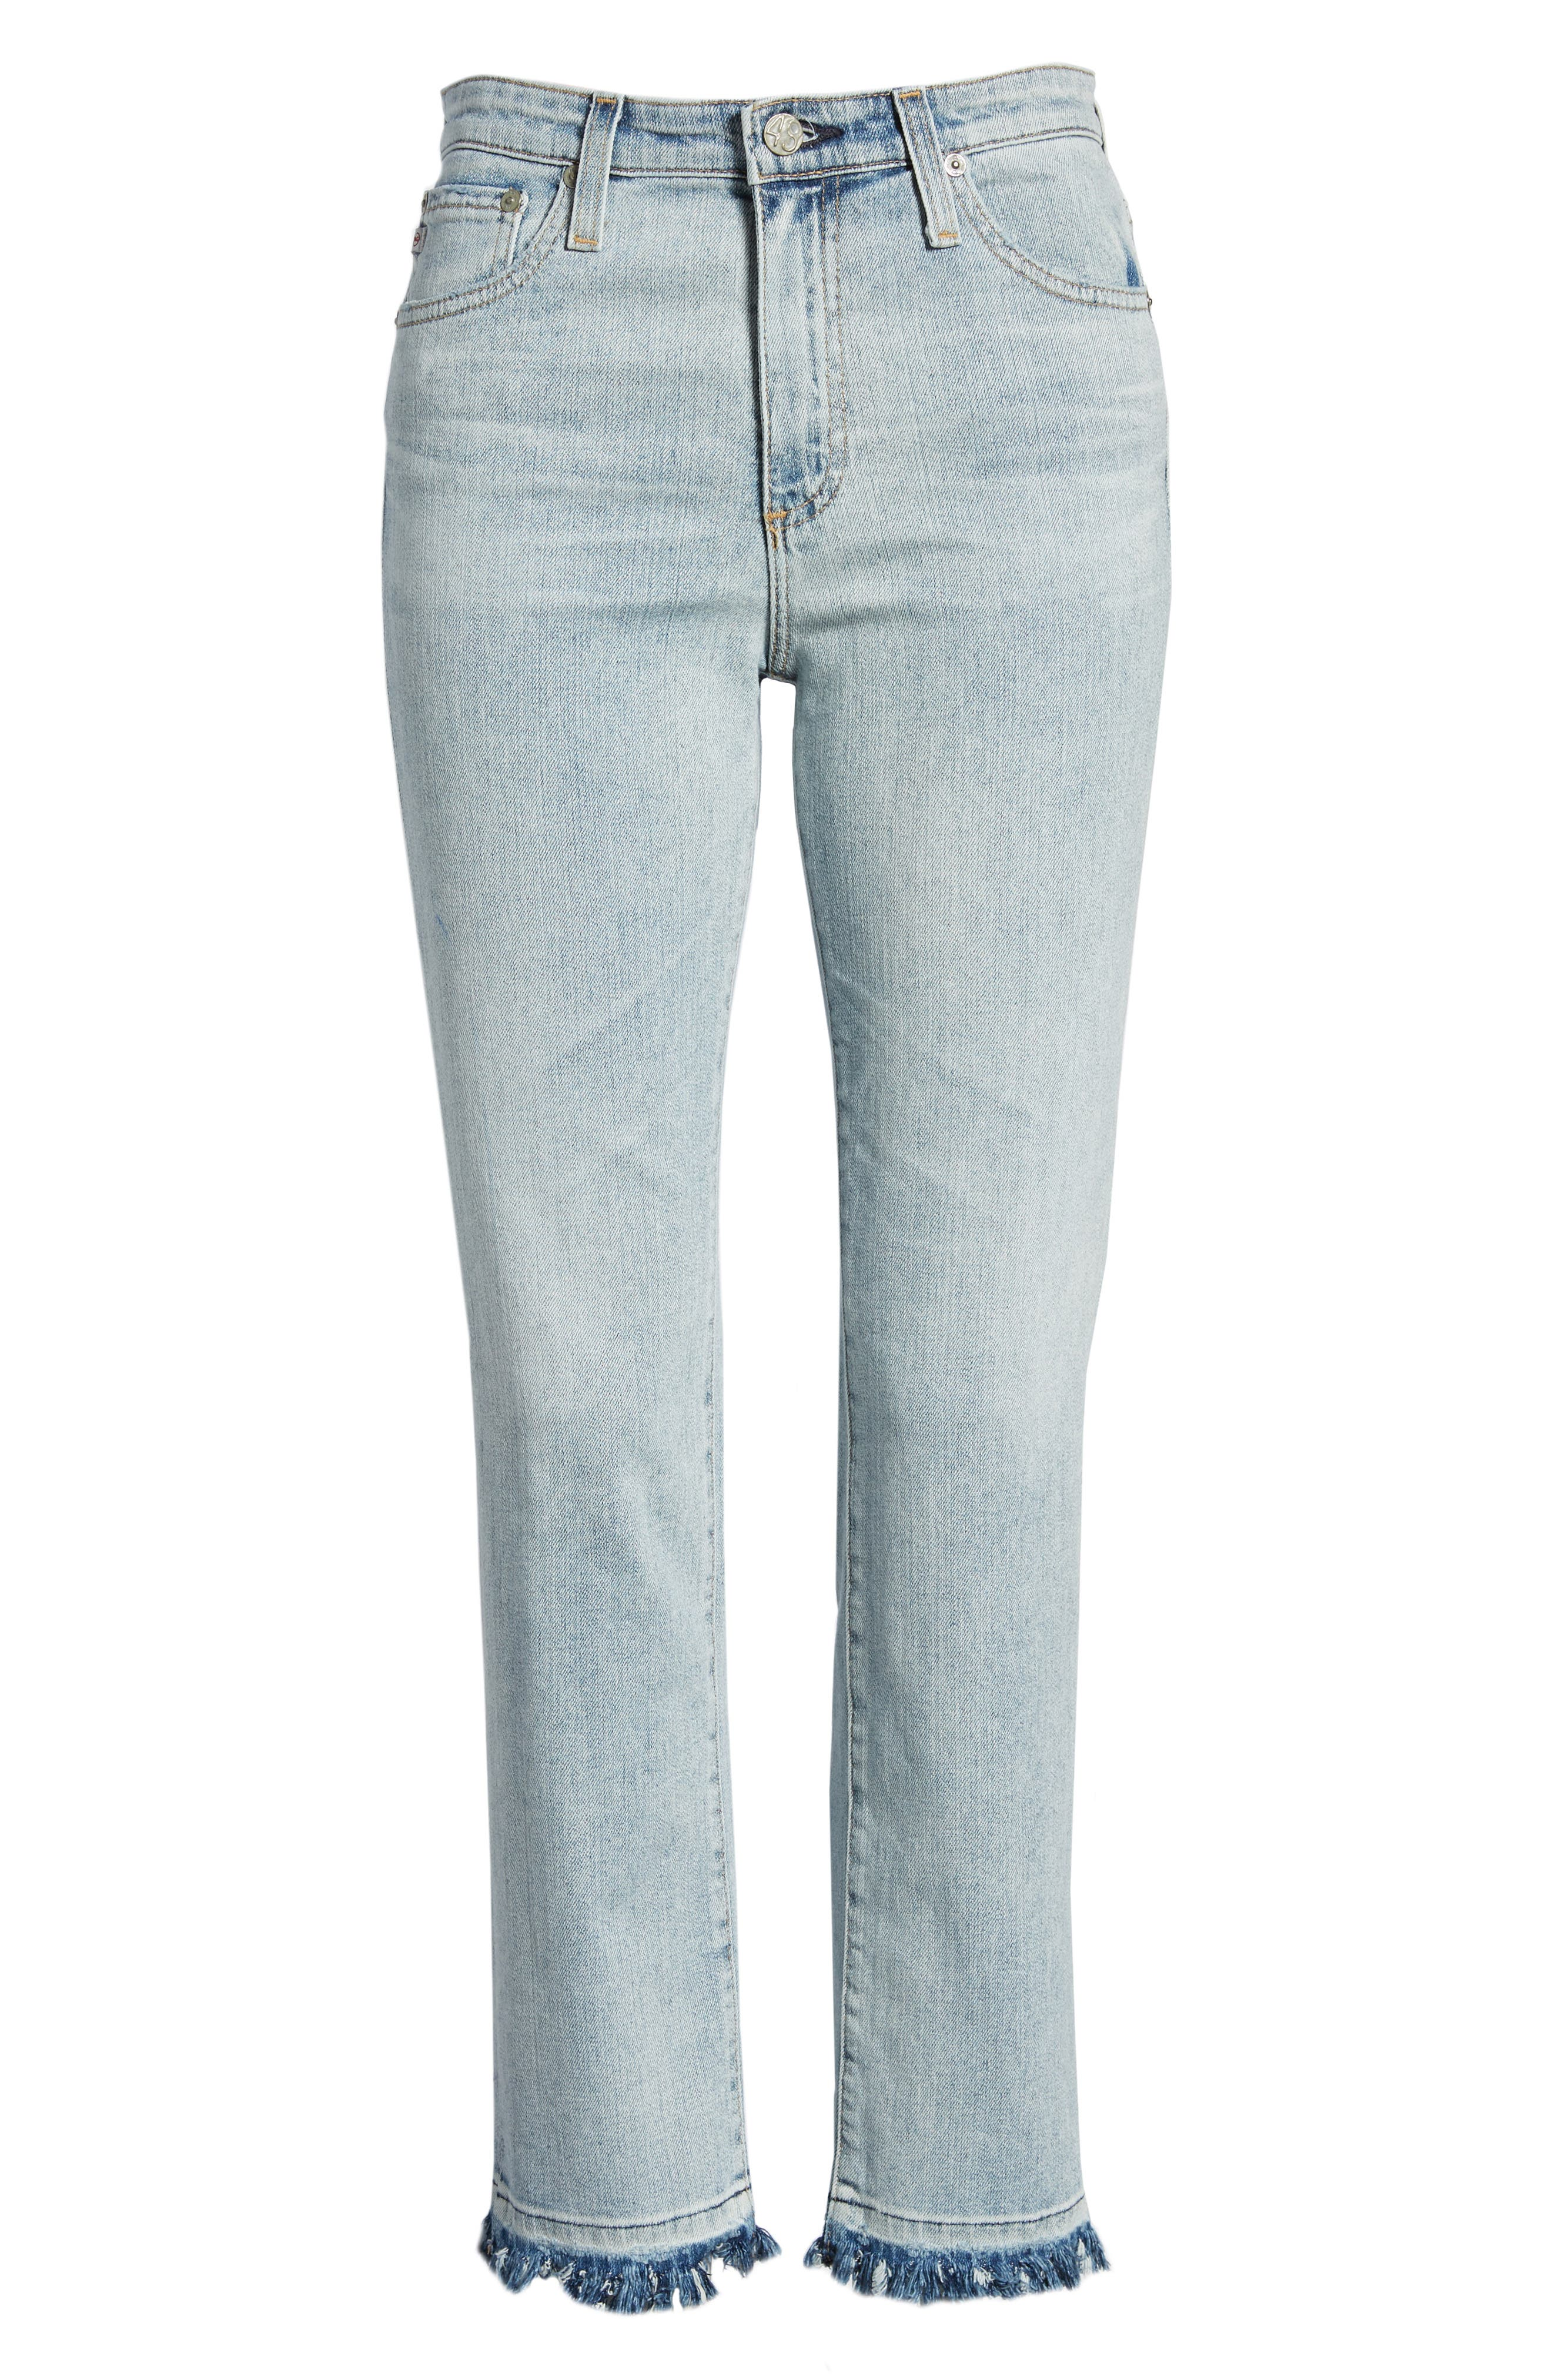 The Isabelle High Waist Crop Straight Leg Jeans,                             Alternate thumbnail 7, color,                             439